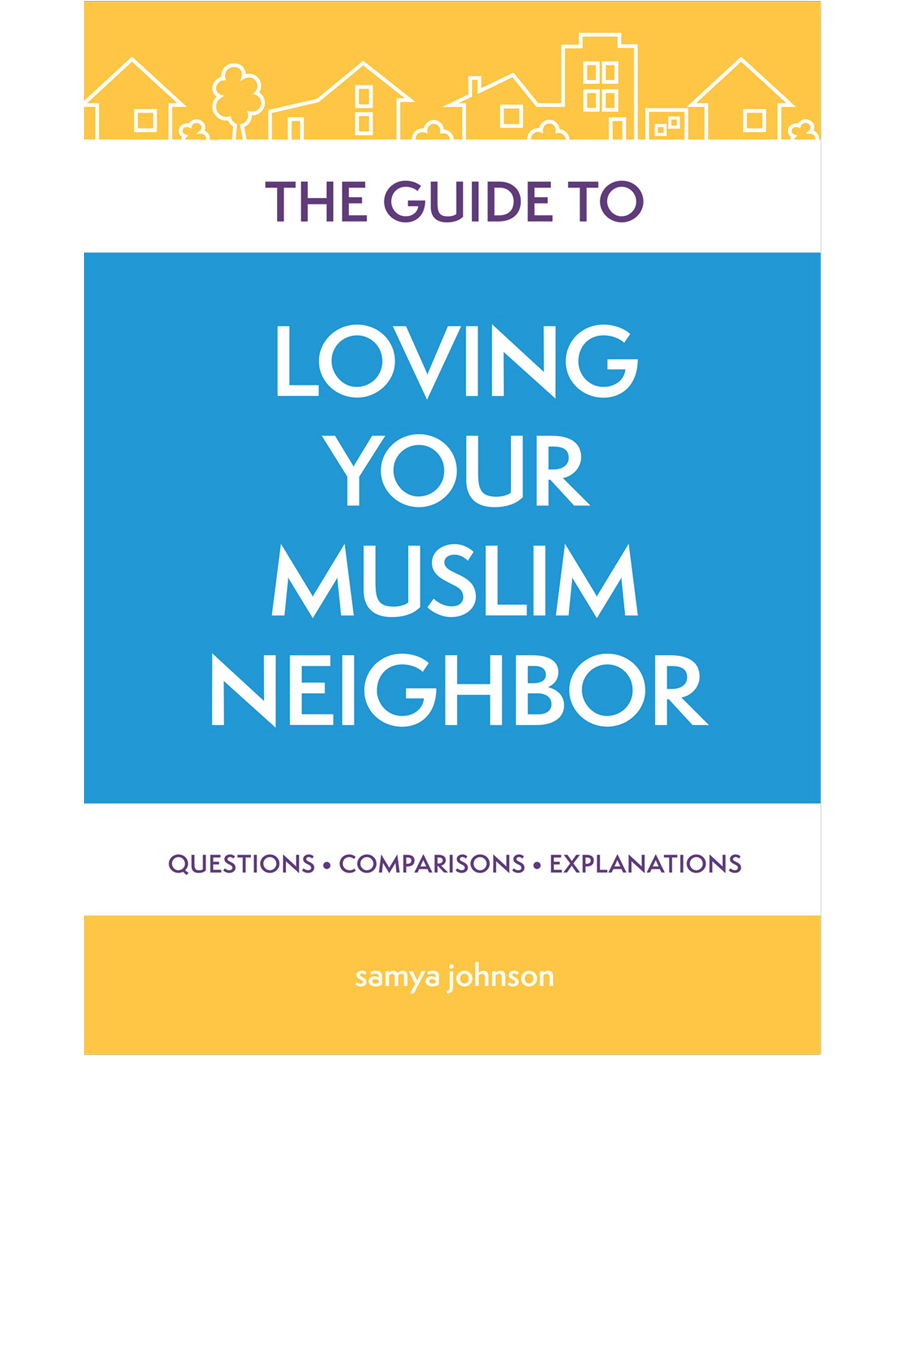 The Guide to Loving Your Muslim Neighbor